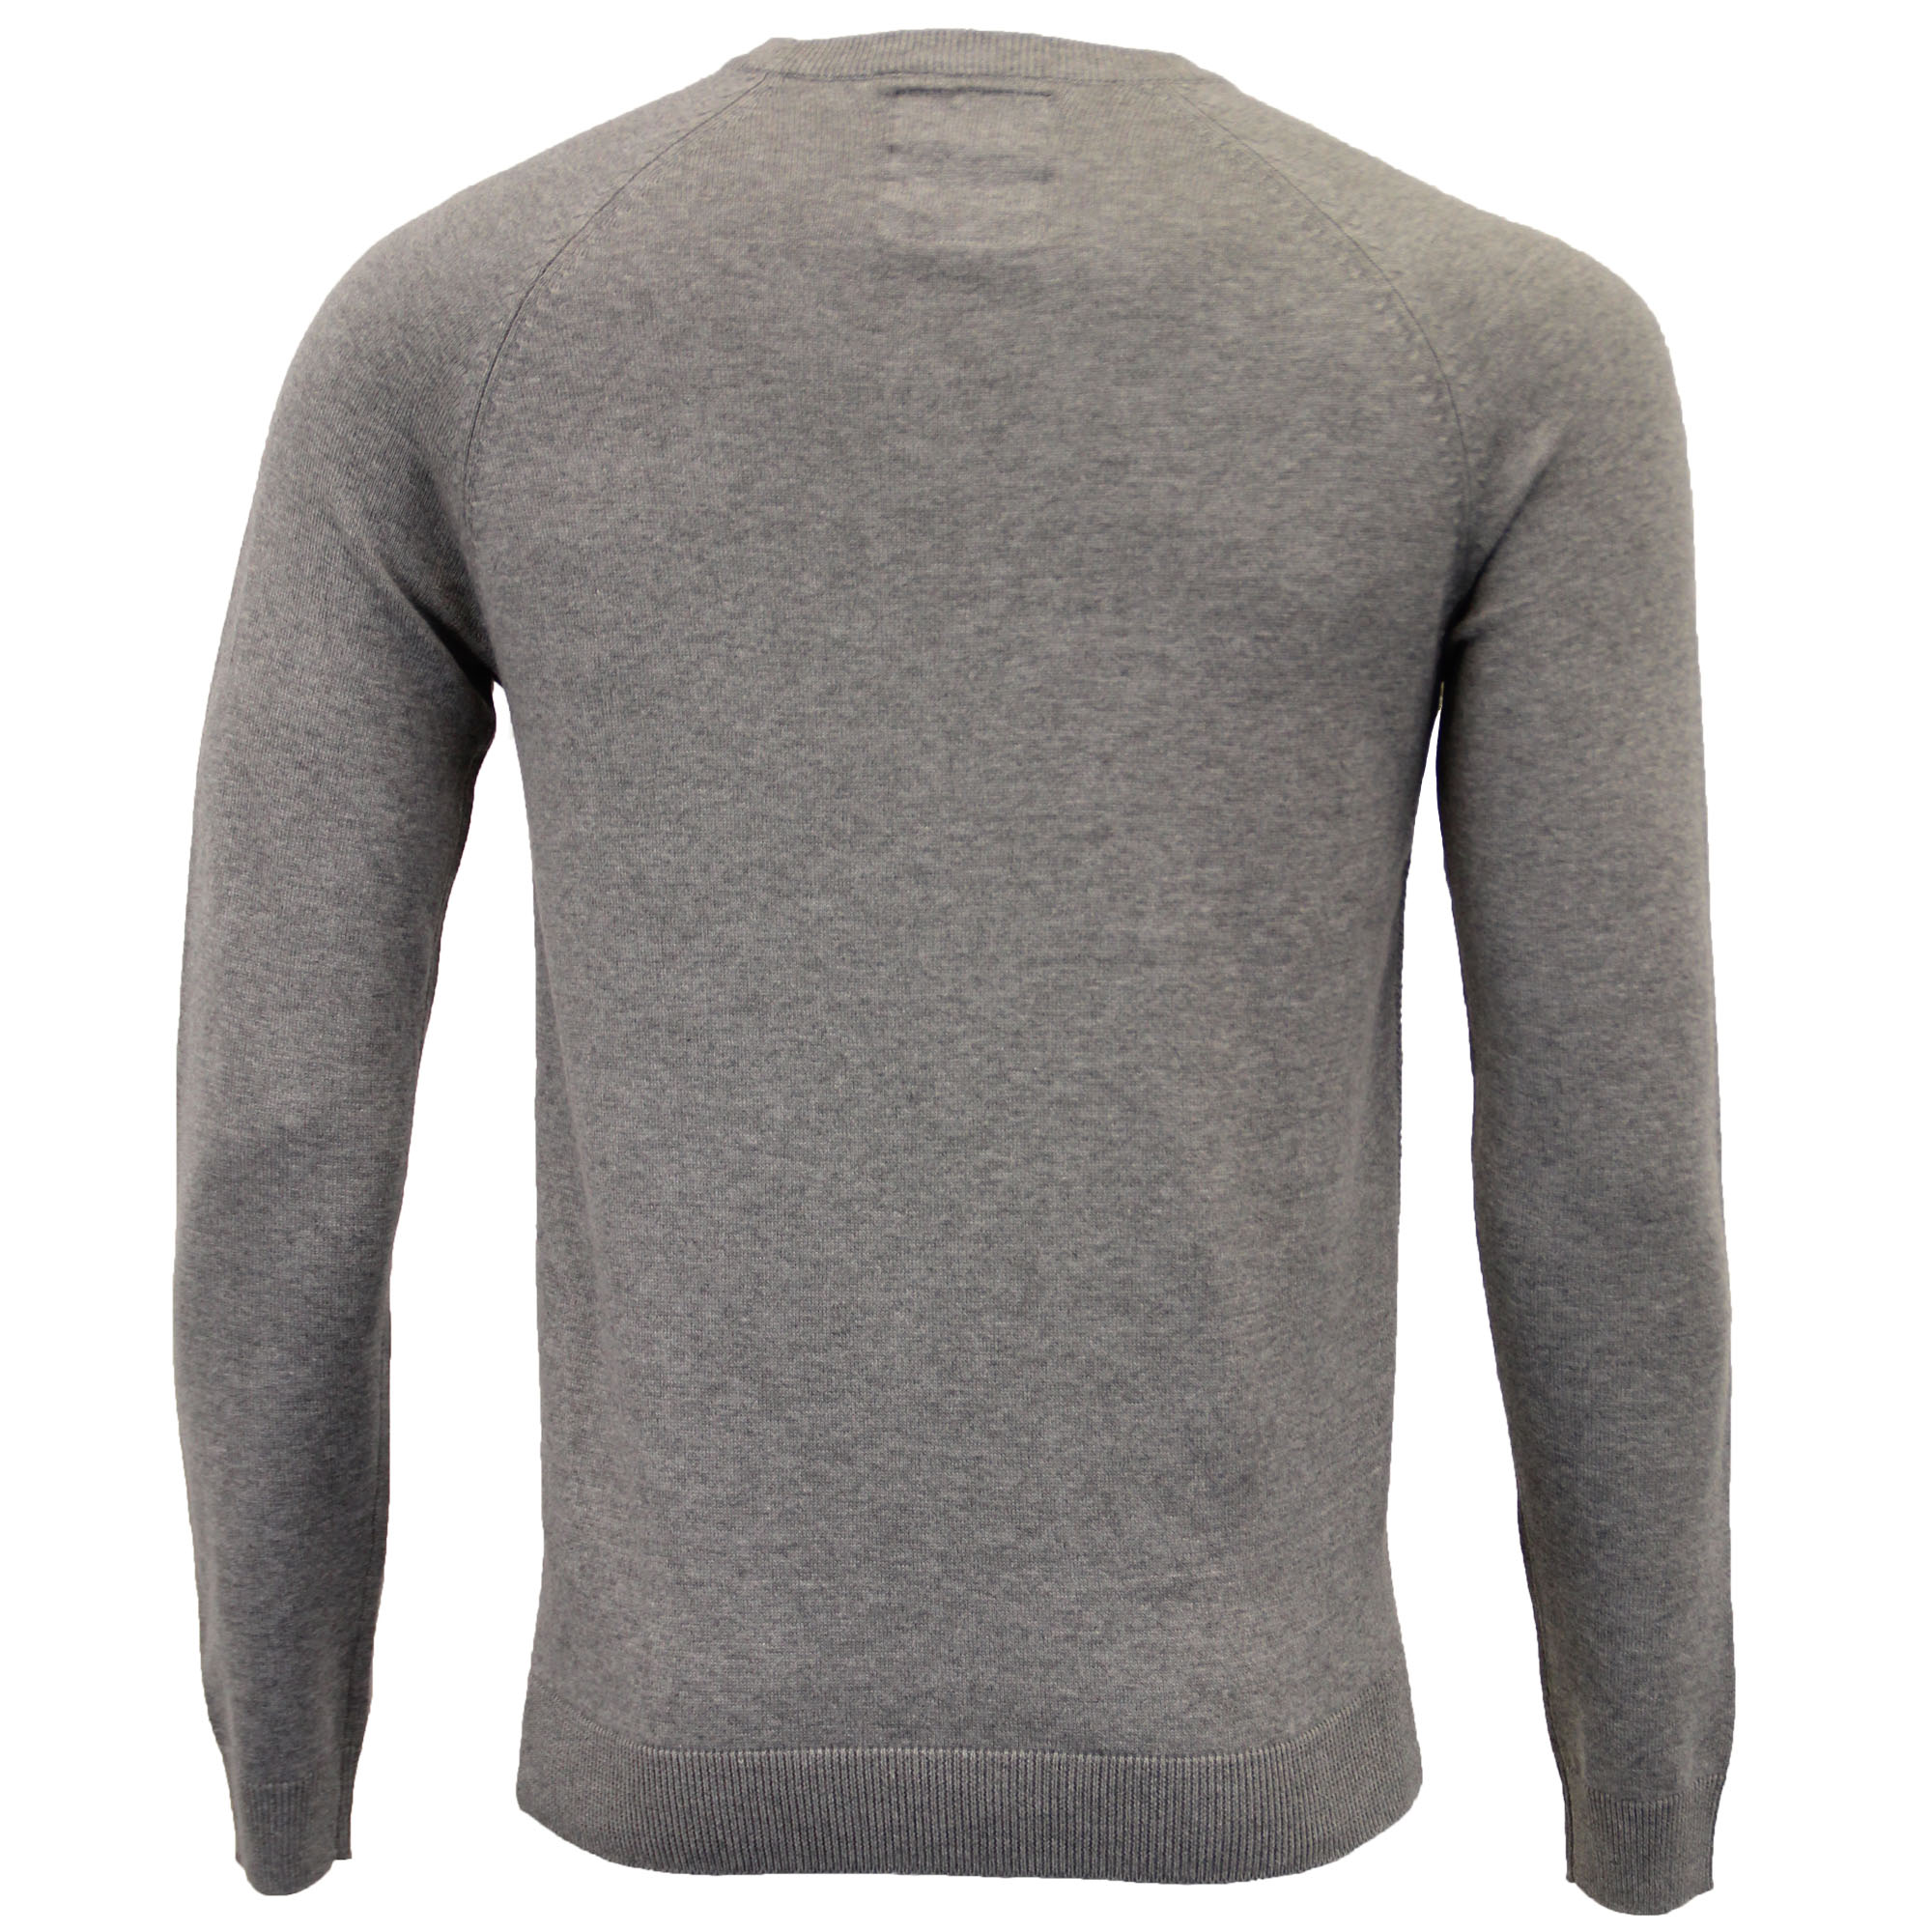 Mens-Jumper-Threadbare-Knitted-Sweater-Pullover-Top-Crew-Neck-Casual-Winter-New thumbnail 9